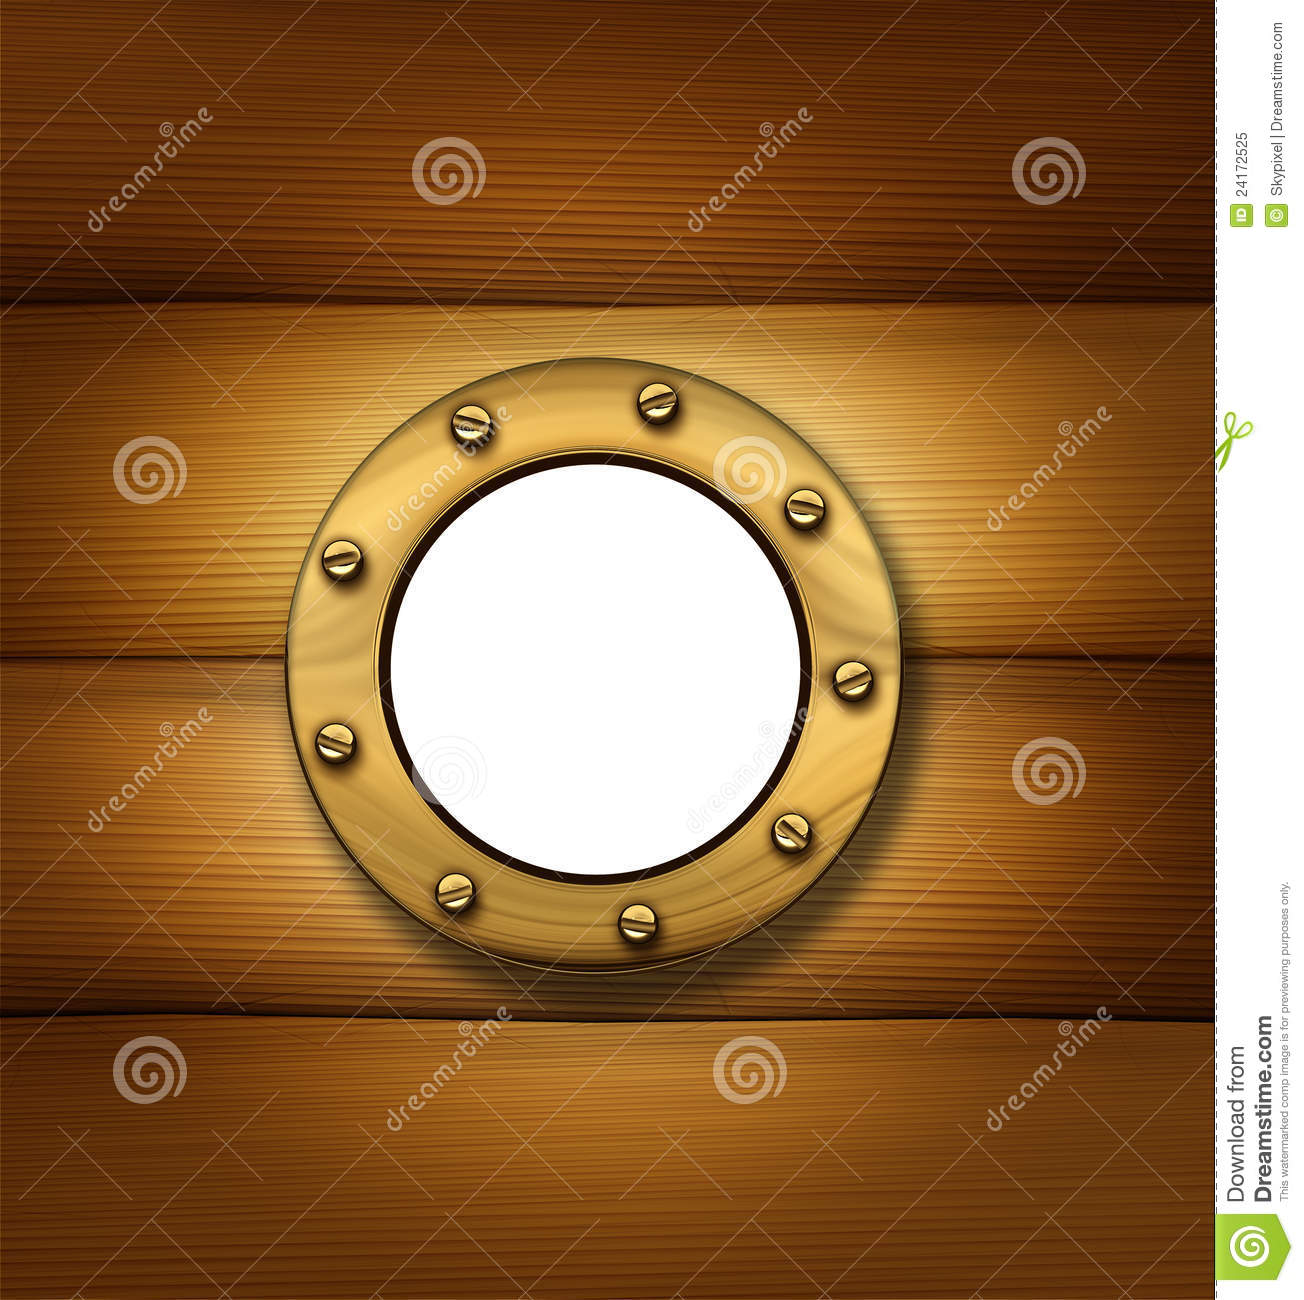 Porthole or ship window on an old wood frame wall as a nautical and